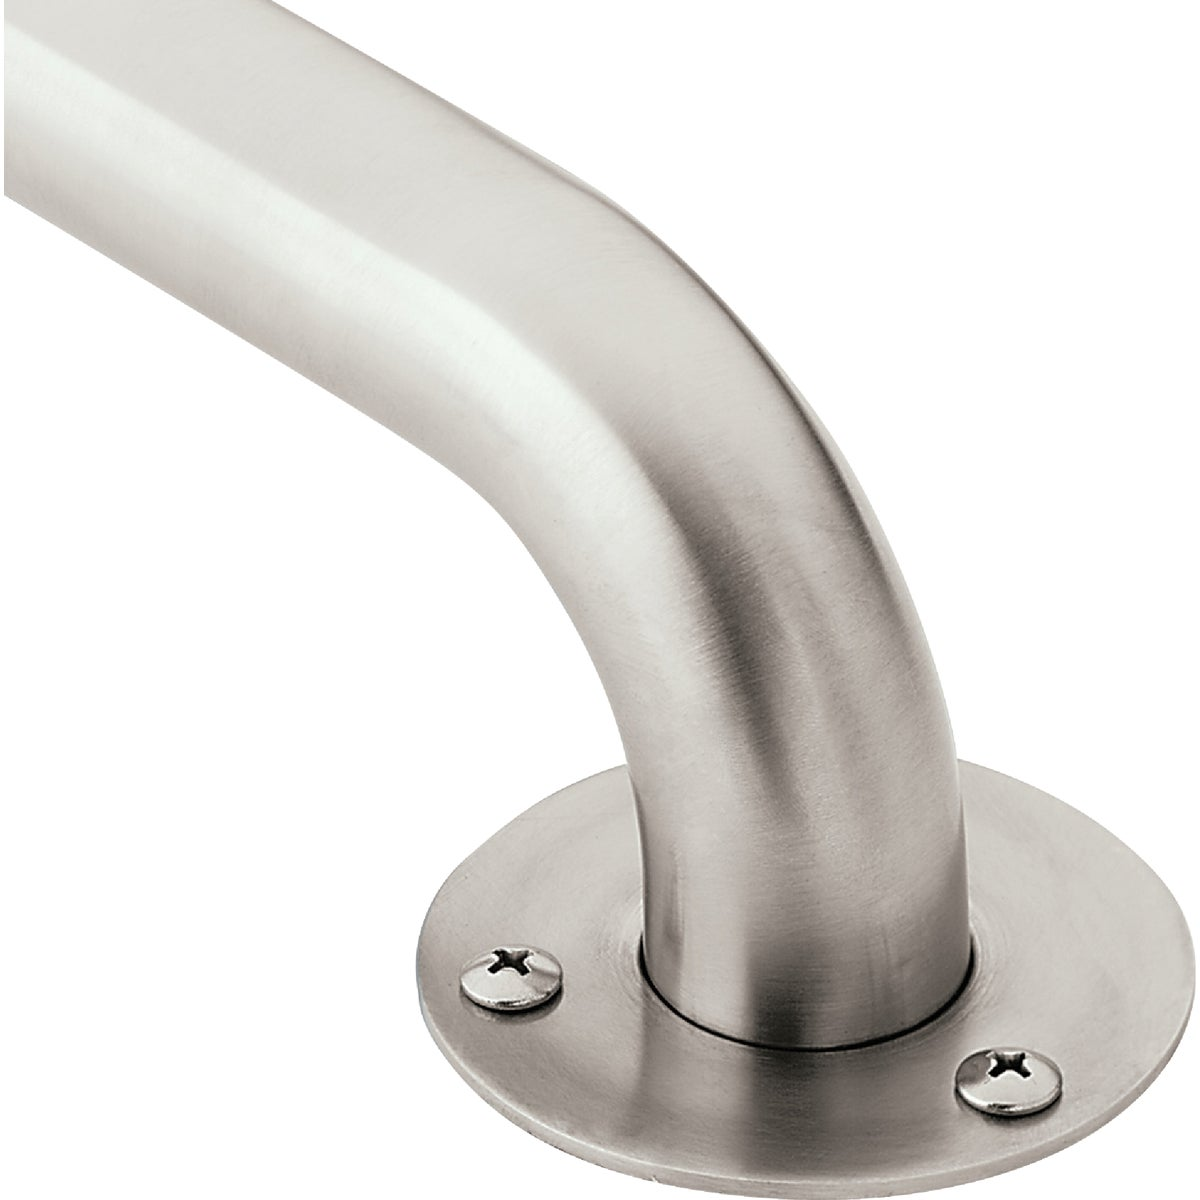 "SS 42"" EXPOSED GRAB BAR - LR7542 by C S I Donner"